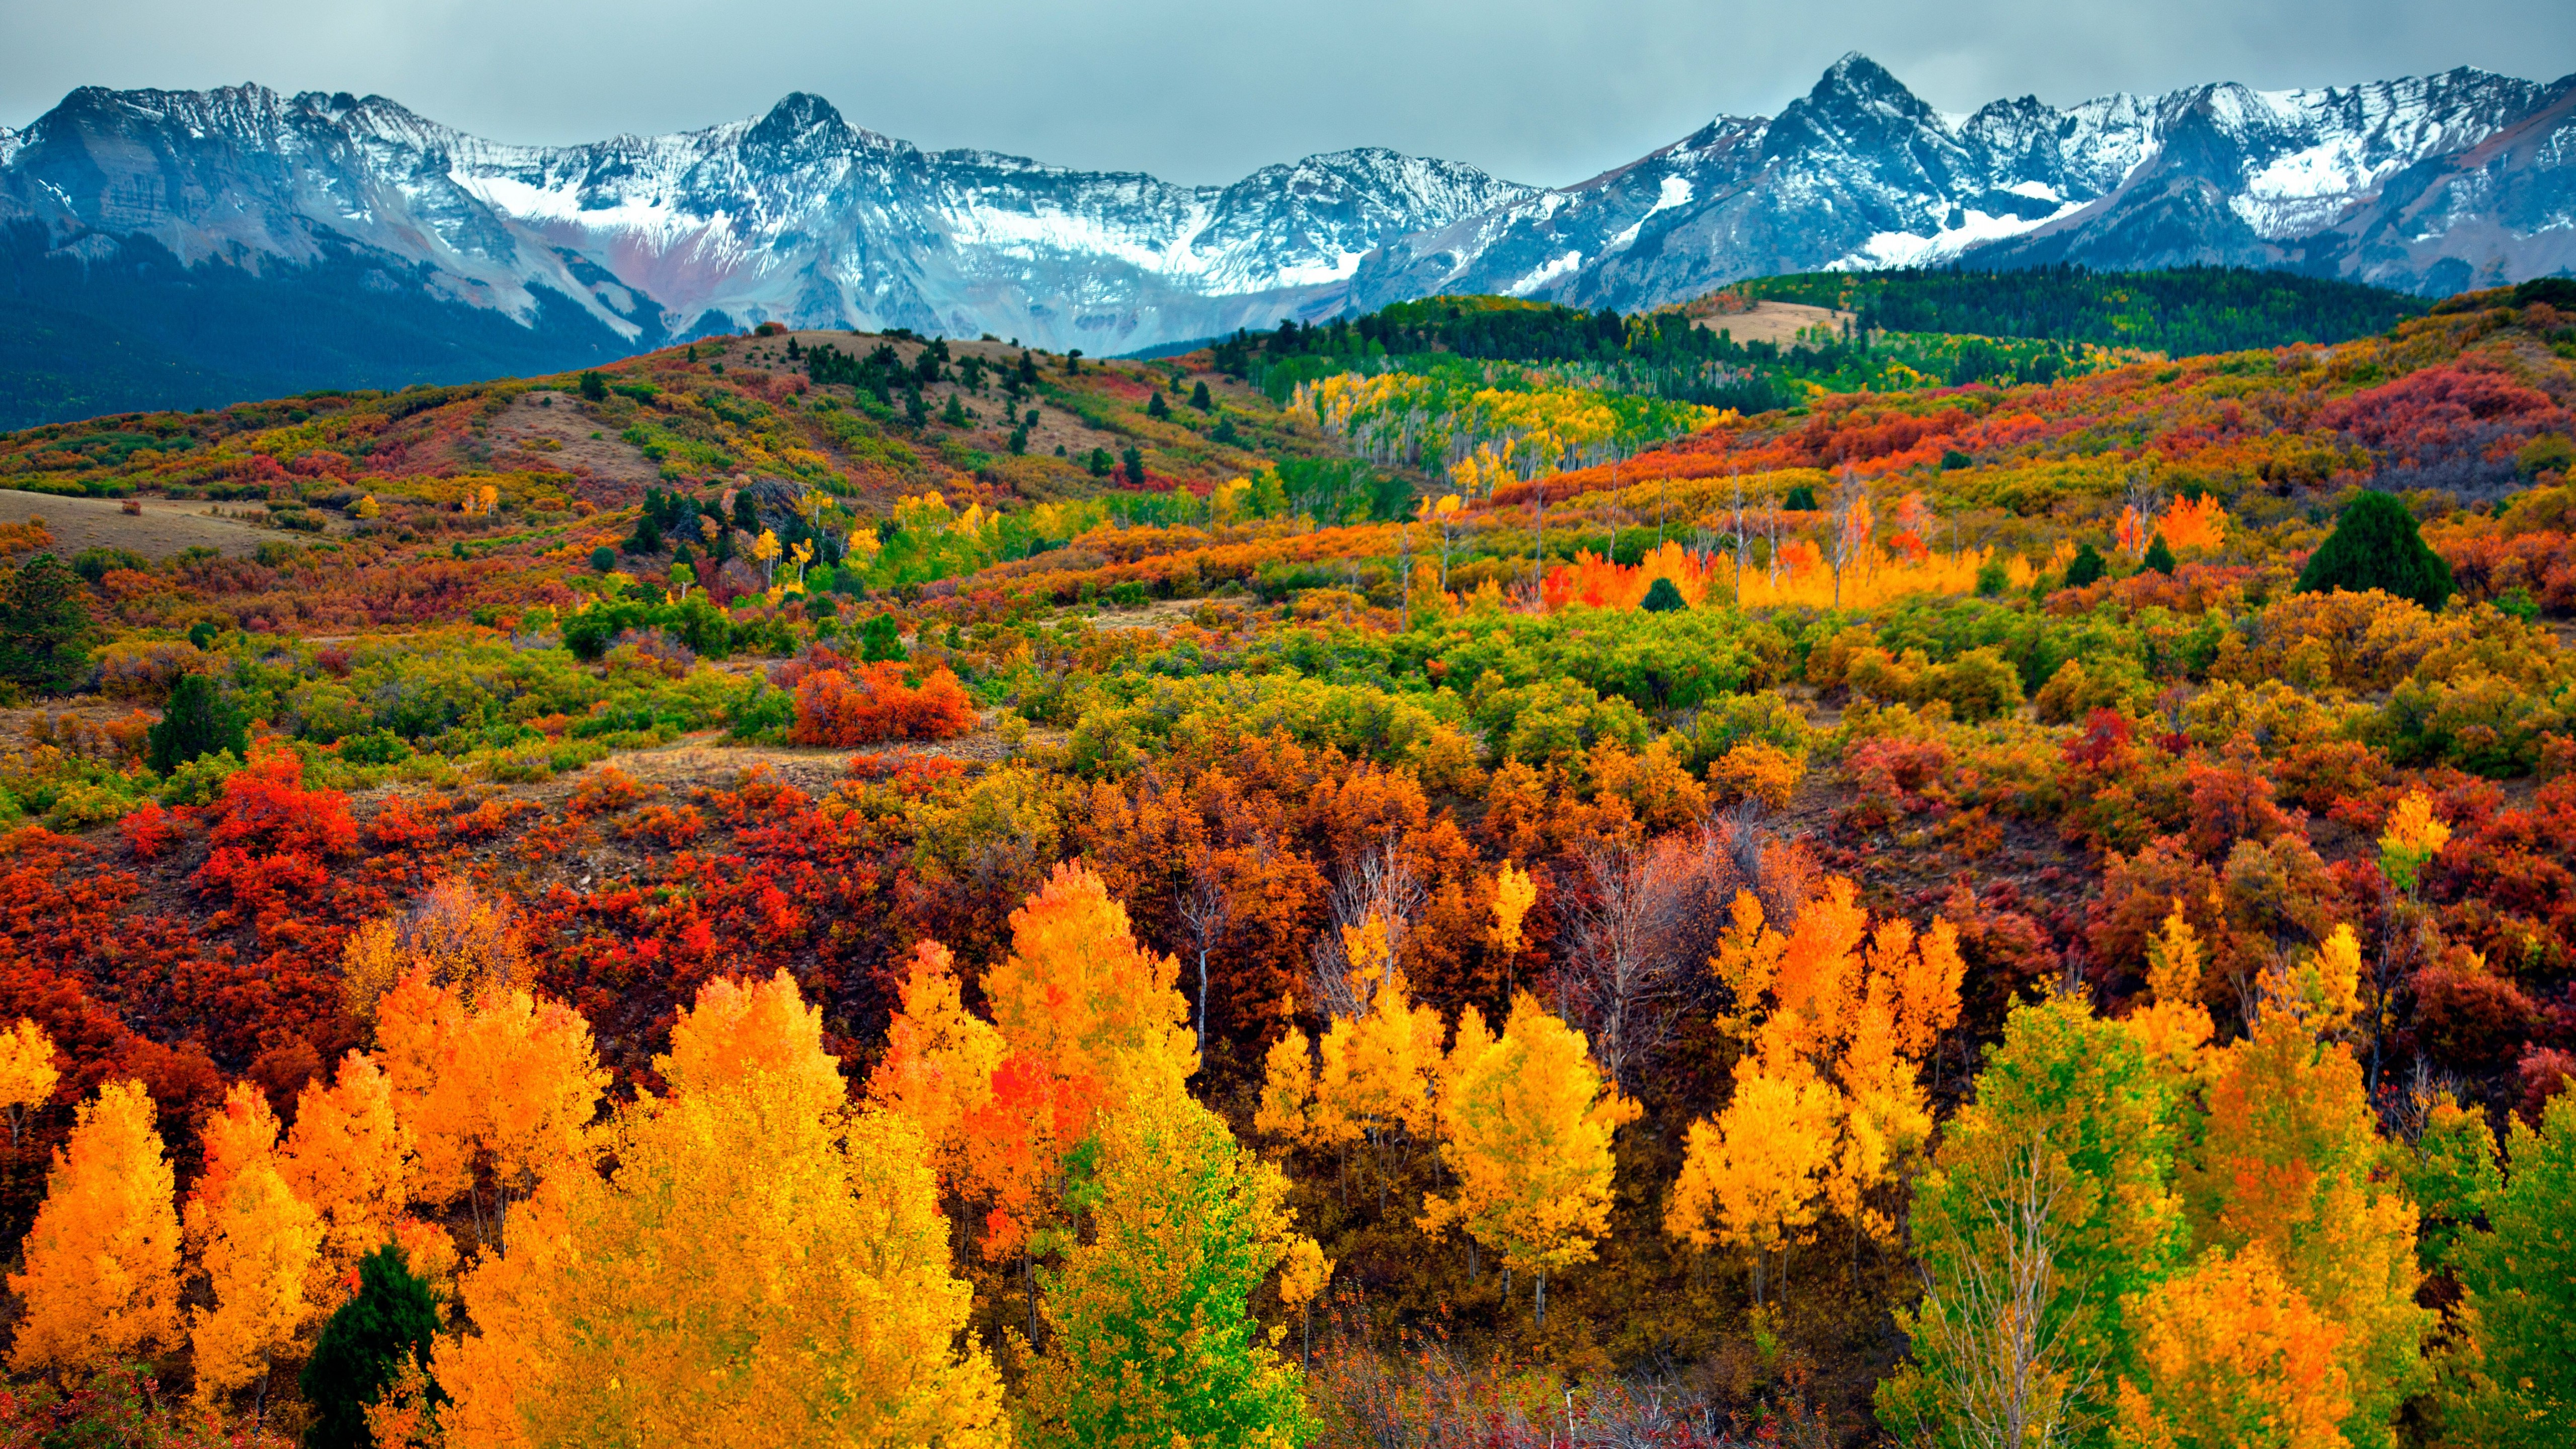 Wallpaper Mountains and forest in autumn